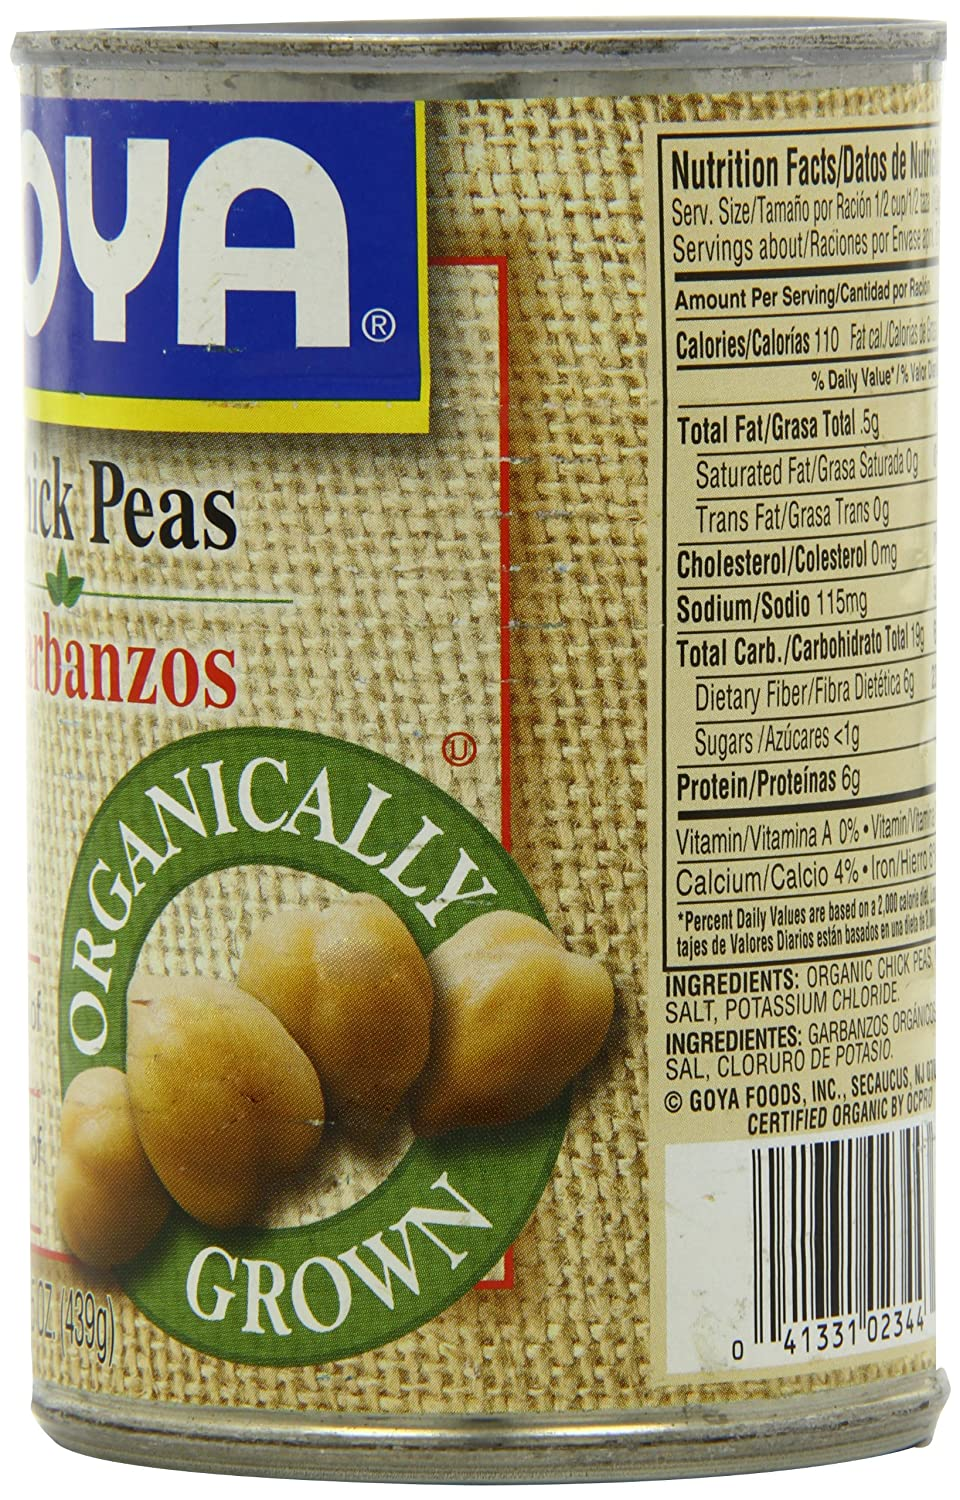 Amazon.com : Goya Organic Chick Peas, 15.5-Ounce (Pack of 24) : Vegetable Bouillon : Grocery & Gourmet Food